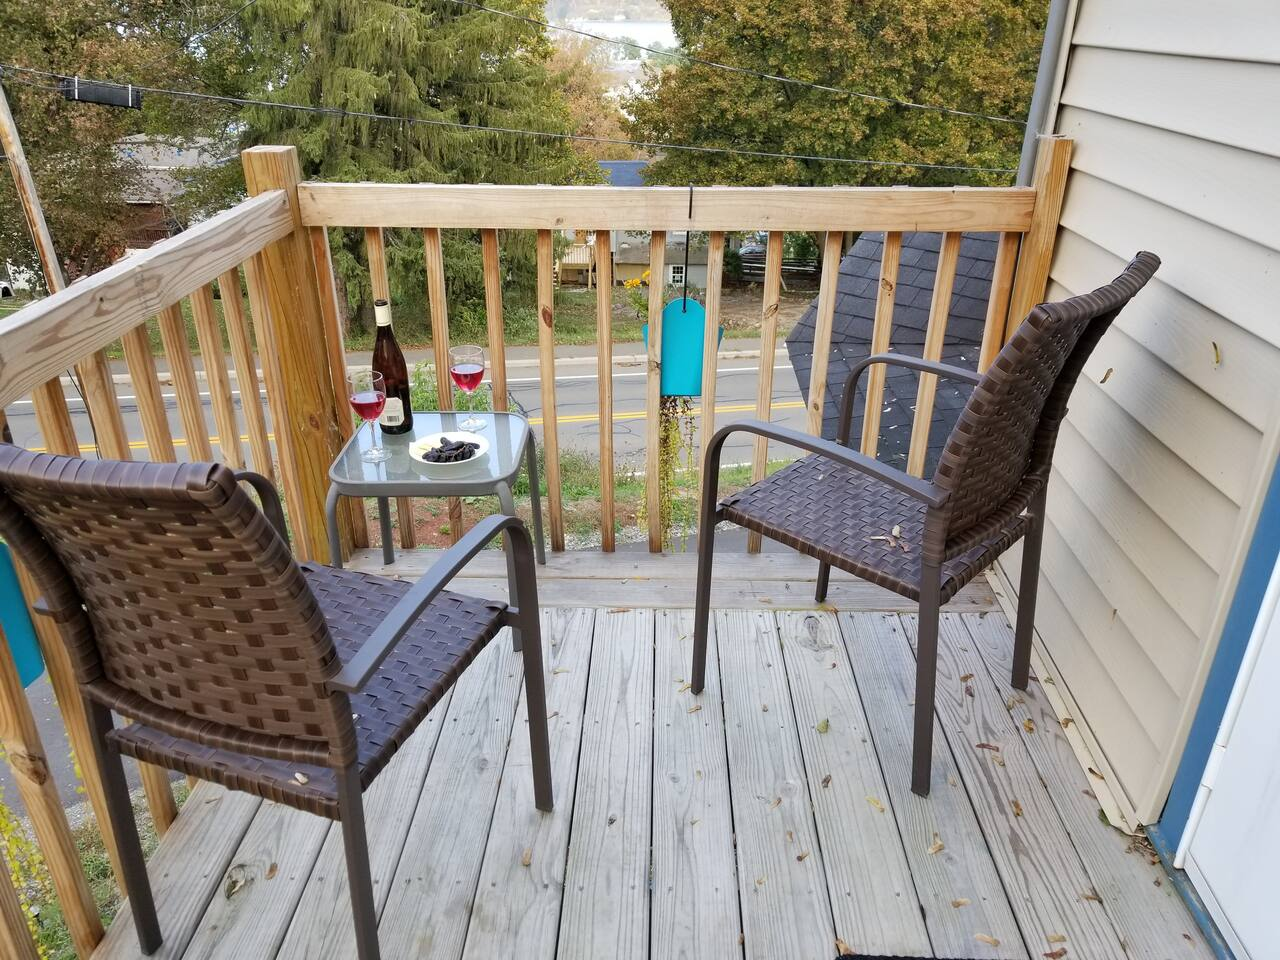 Our upper deck is the perfect place to relax and sip some wine